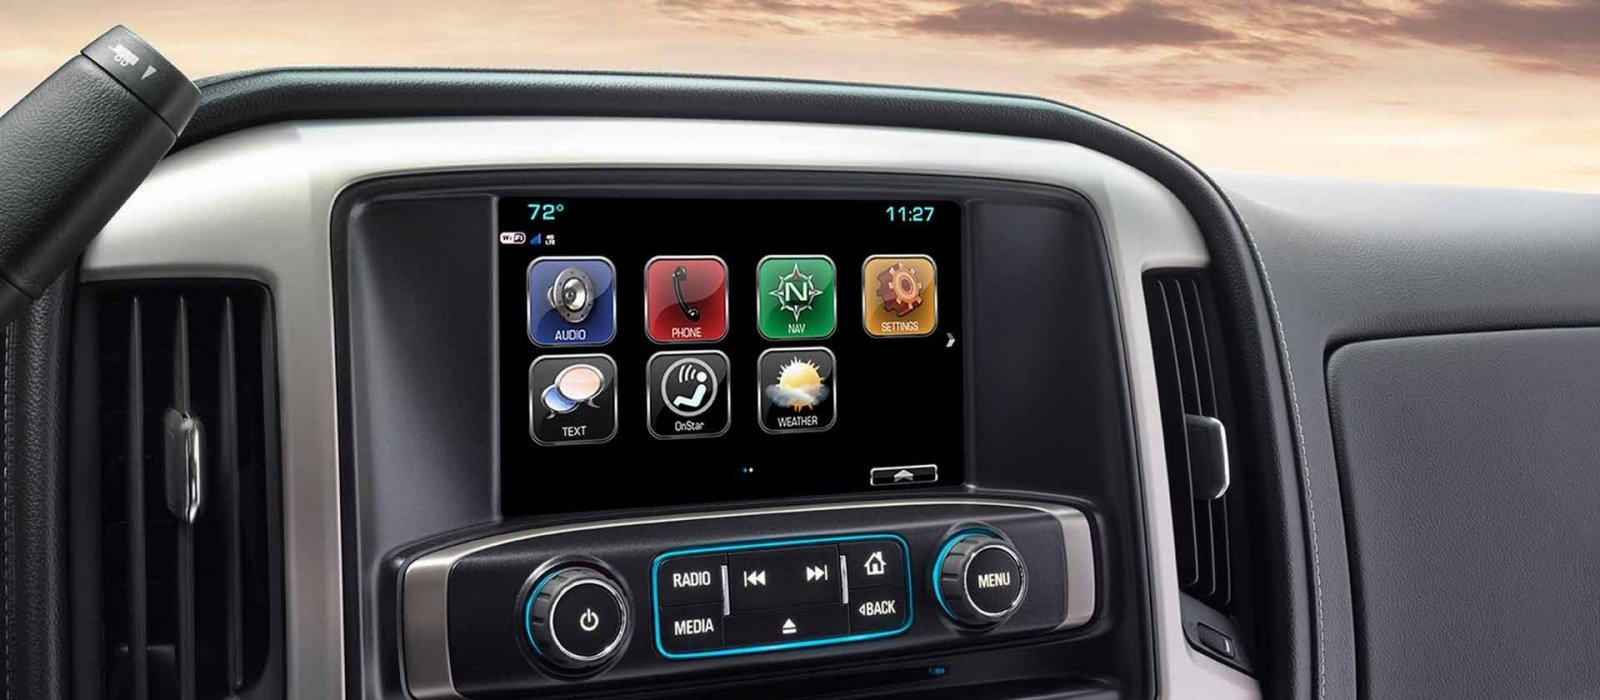 2017 GMC Sierra 2500 Touchscreen